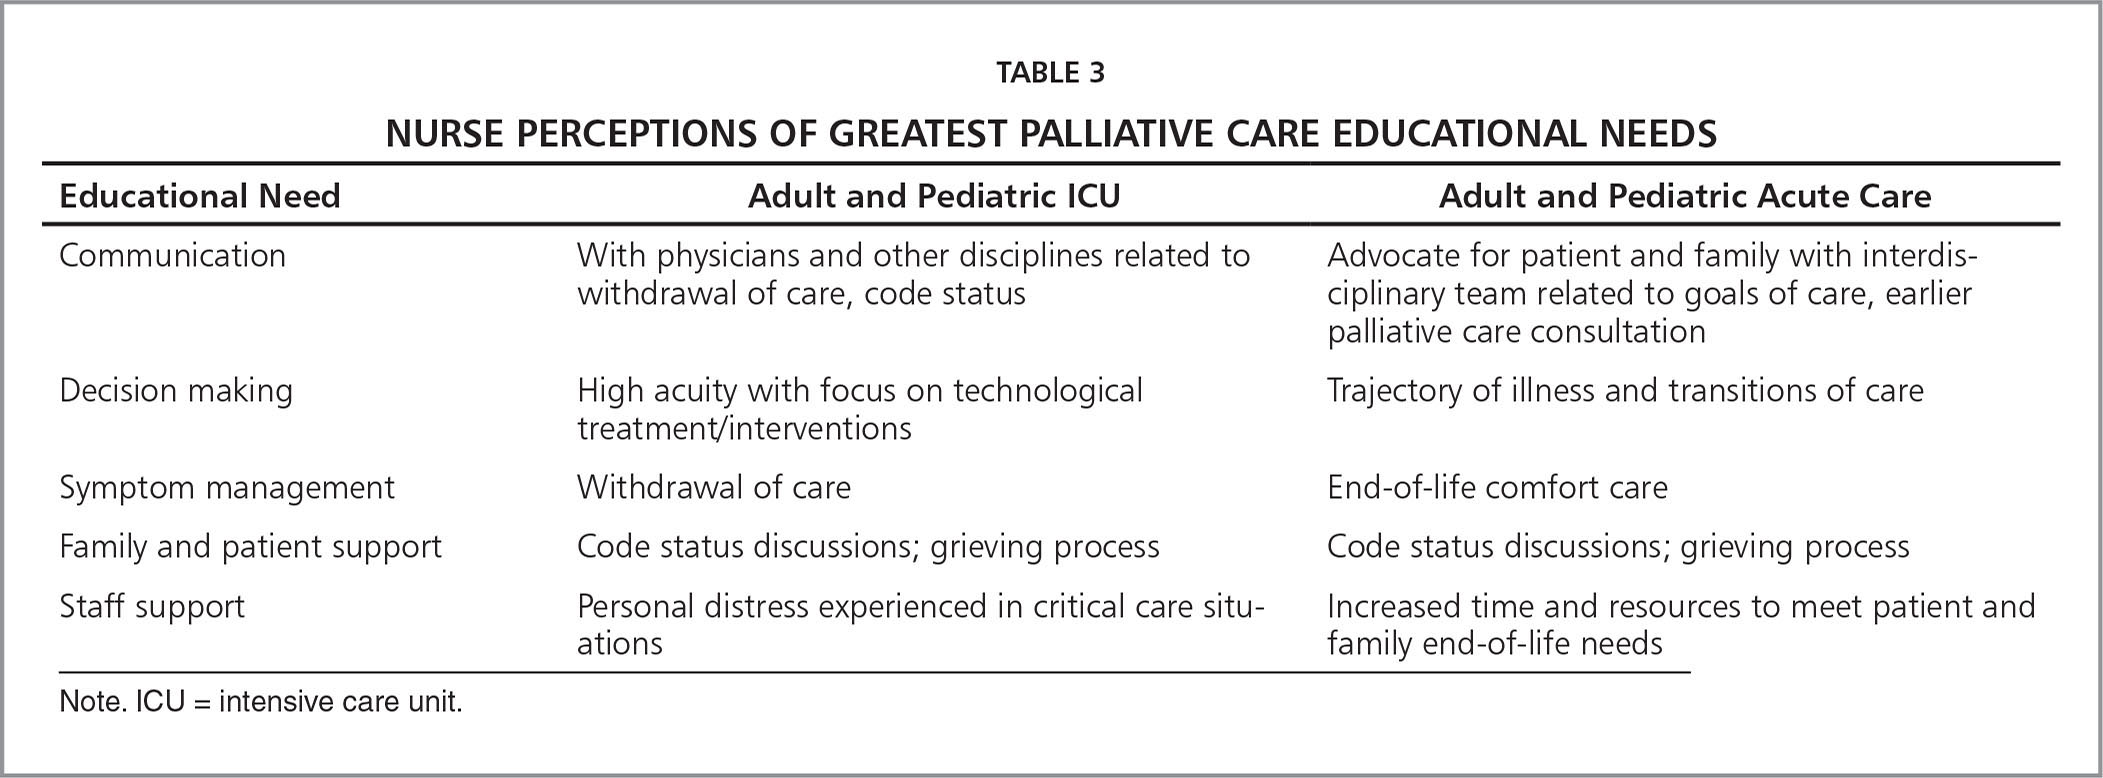 nursing death and palliative care Timing of referral for hospice-based palliative care varies nationwide a large retrospective study by the national institute for health research has found nationwide variation in the timing of referral to hospice care.